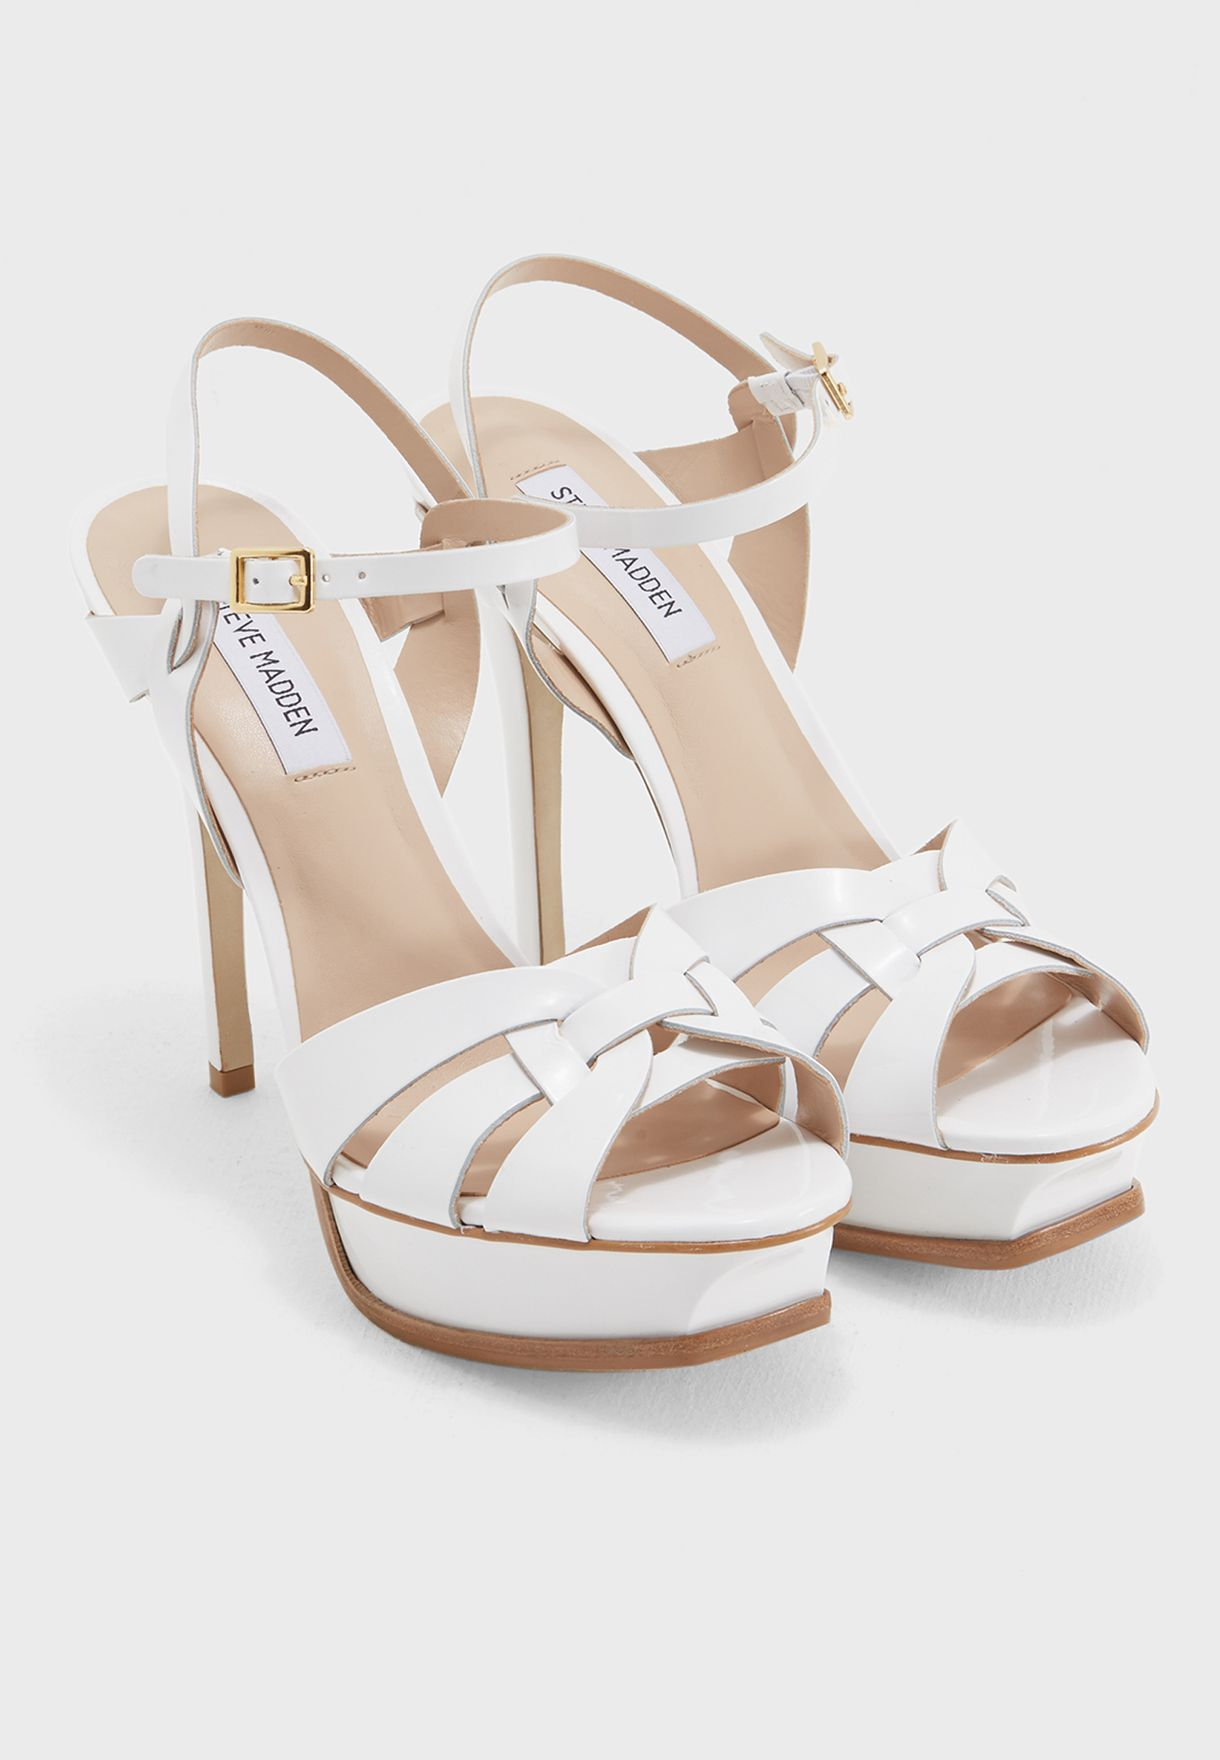 9b0629d44acb Shop Steve Madden white Kananda High-Heel Sandals KANANDA for Women ...